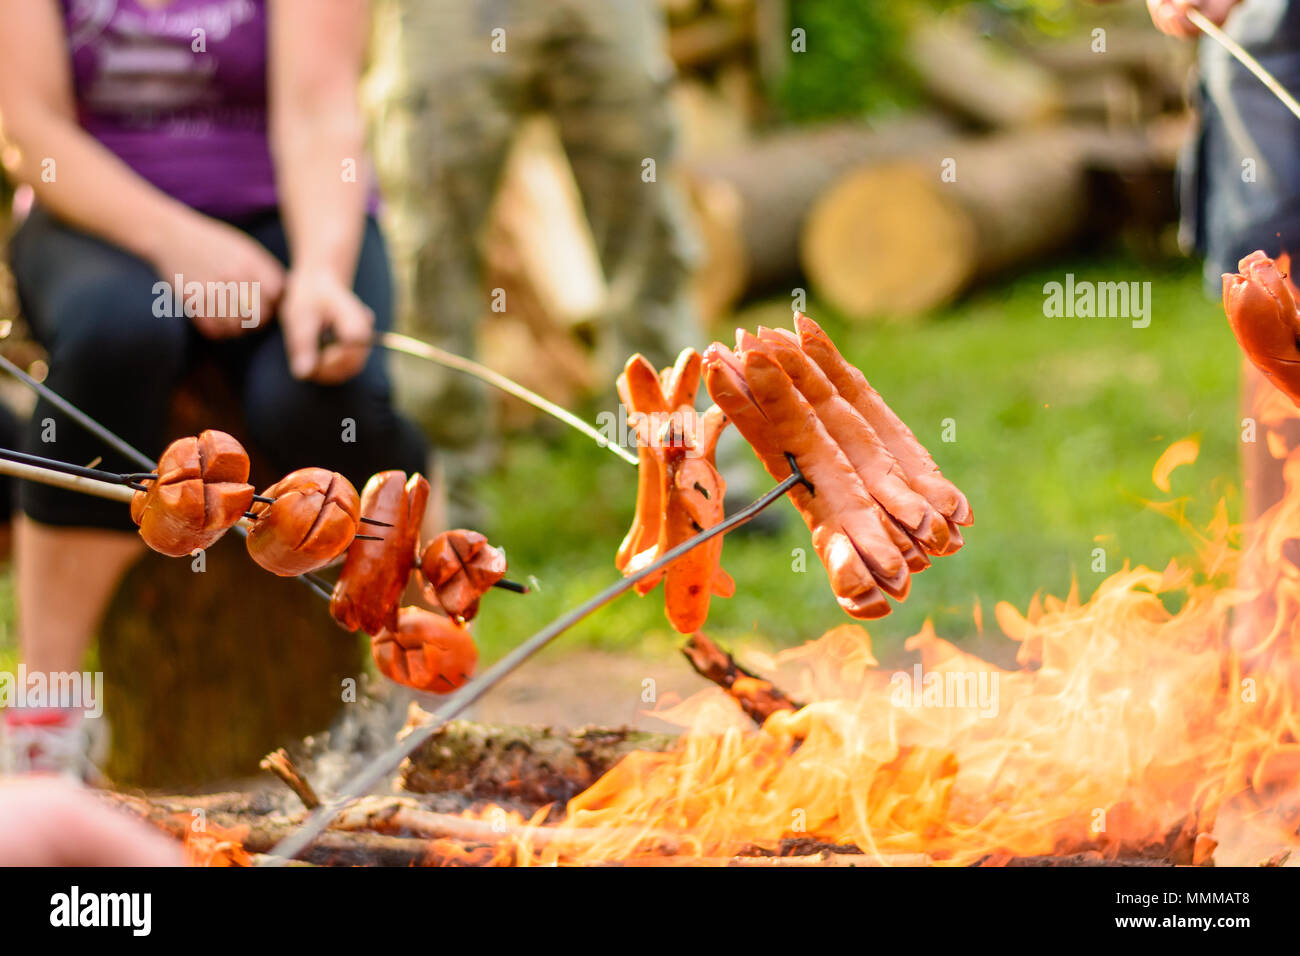 Grilling sausages over a campfire in the forest. Holiday and summer camping in the countryside. Beltaine night in the Czech Republic. May day celebrat - Stock Image